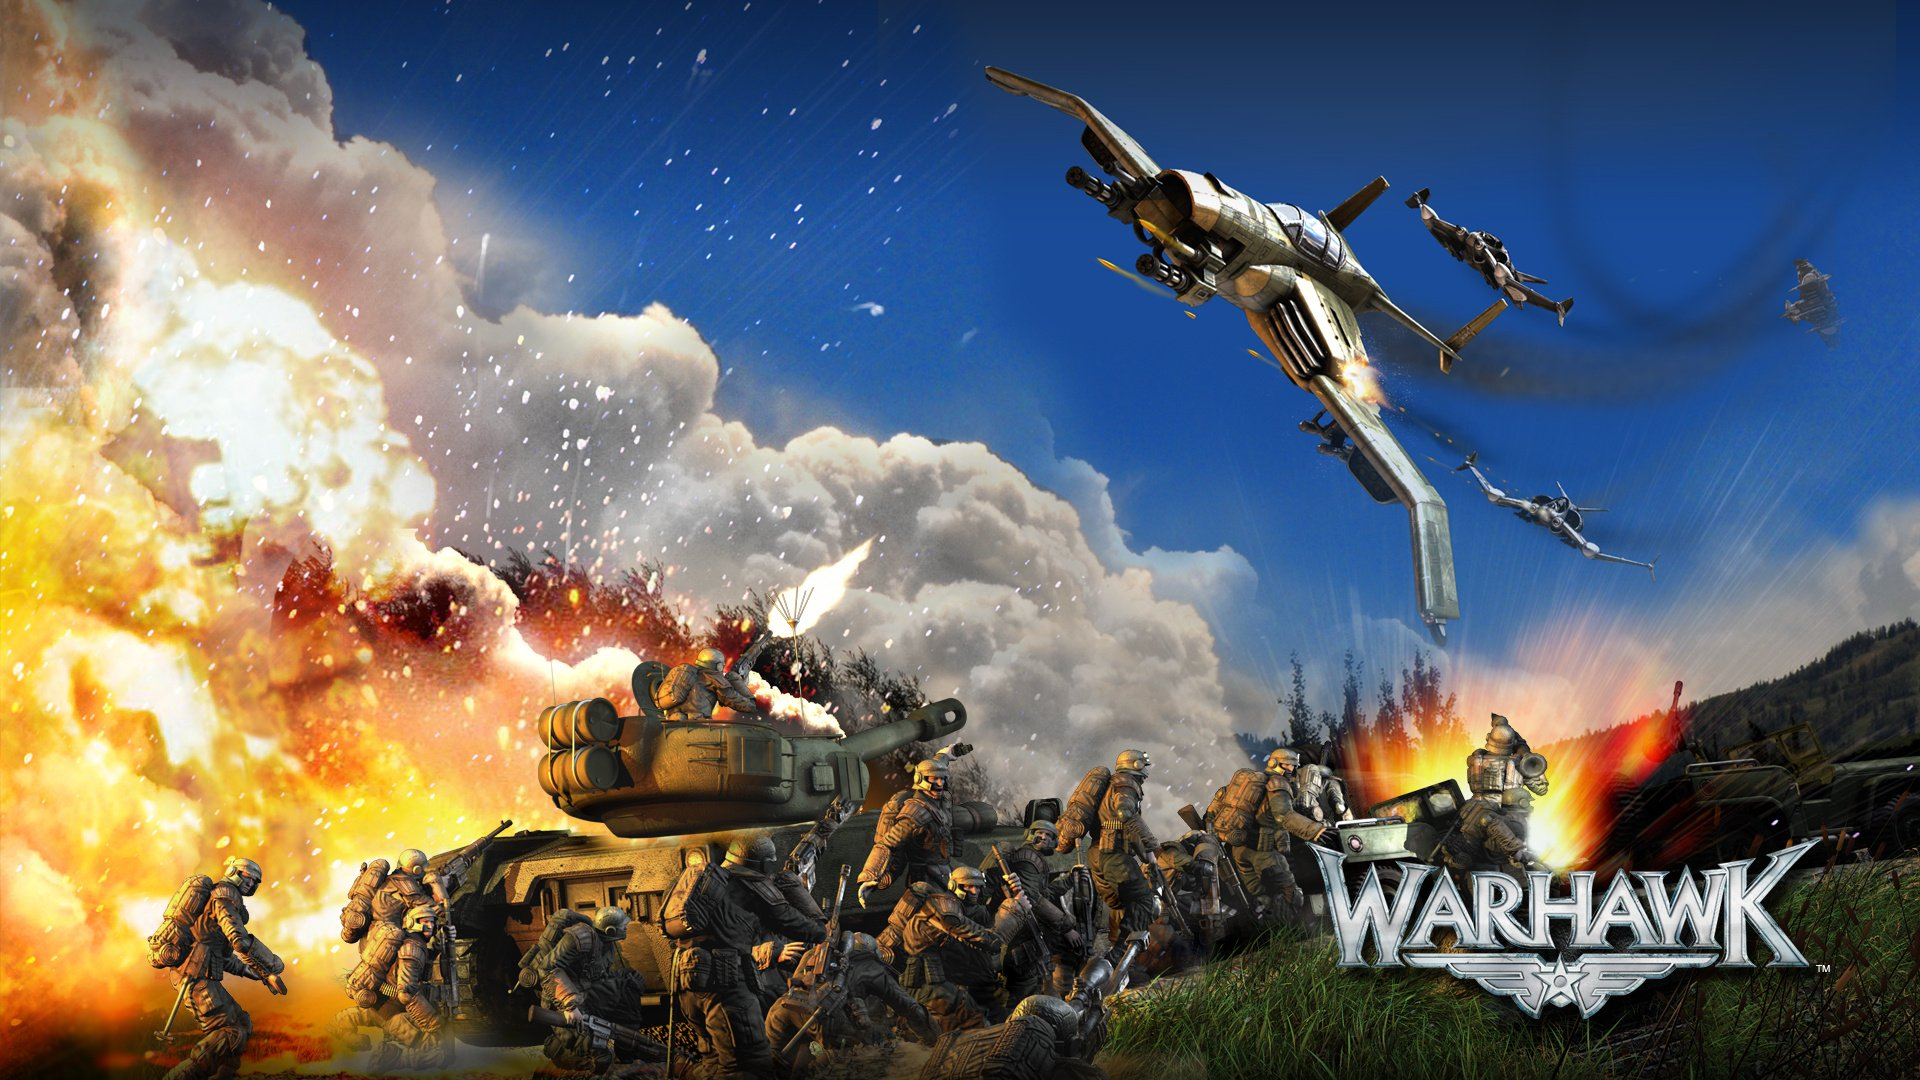 Warhawk and More PS3 Games Latest to Suffer Sony's Online Server